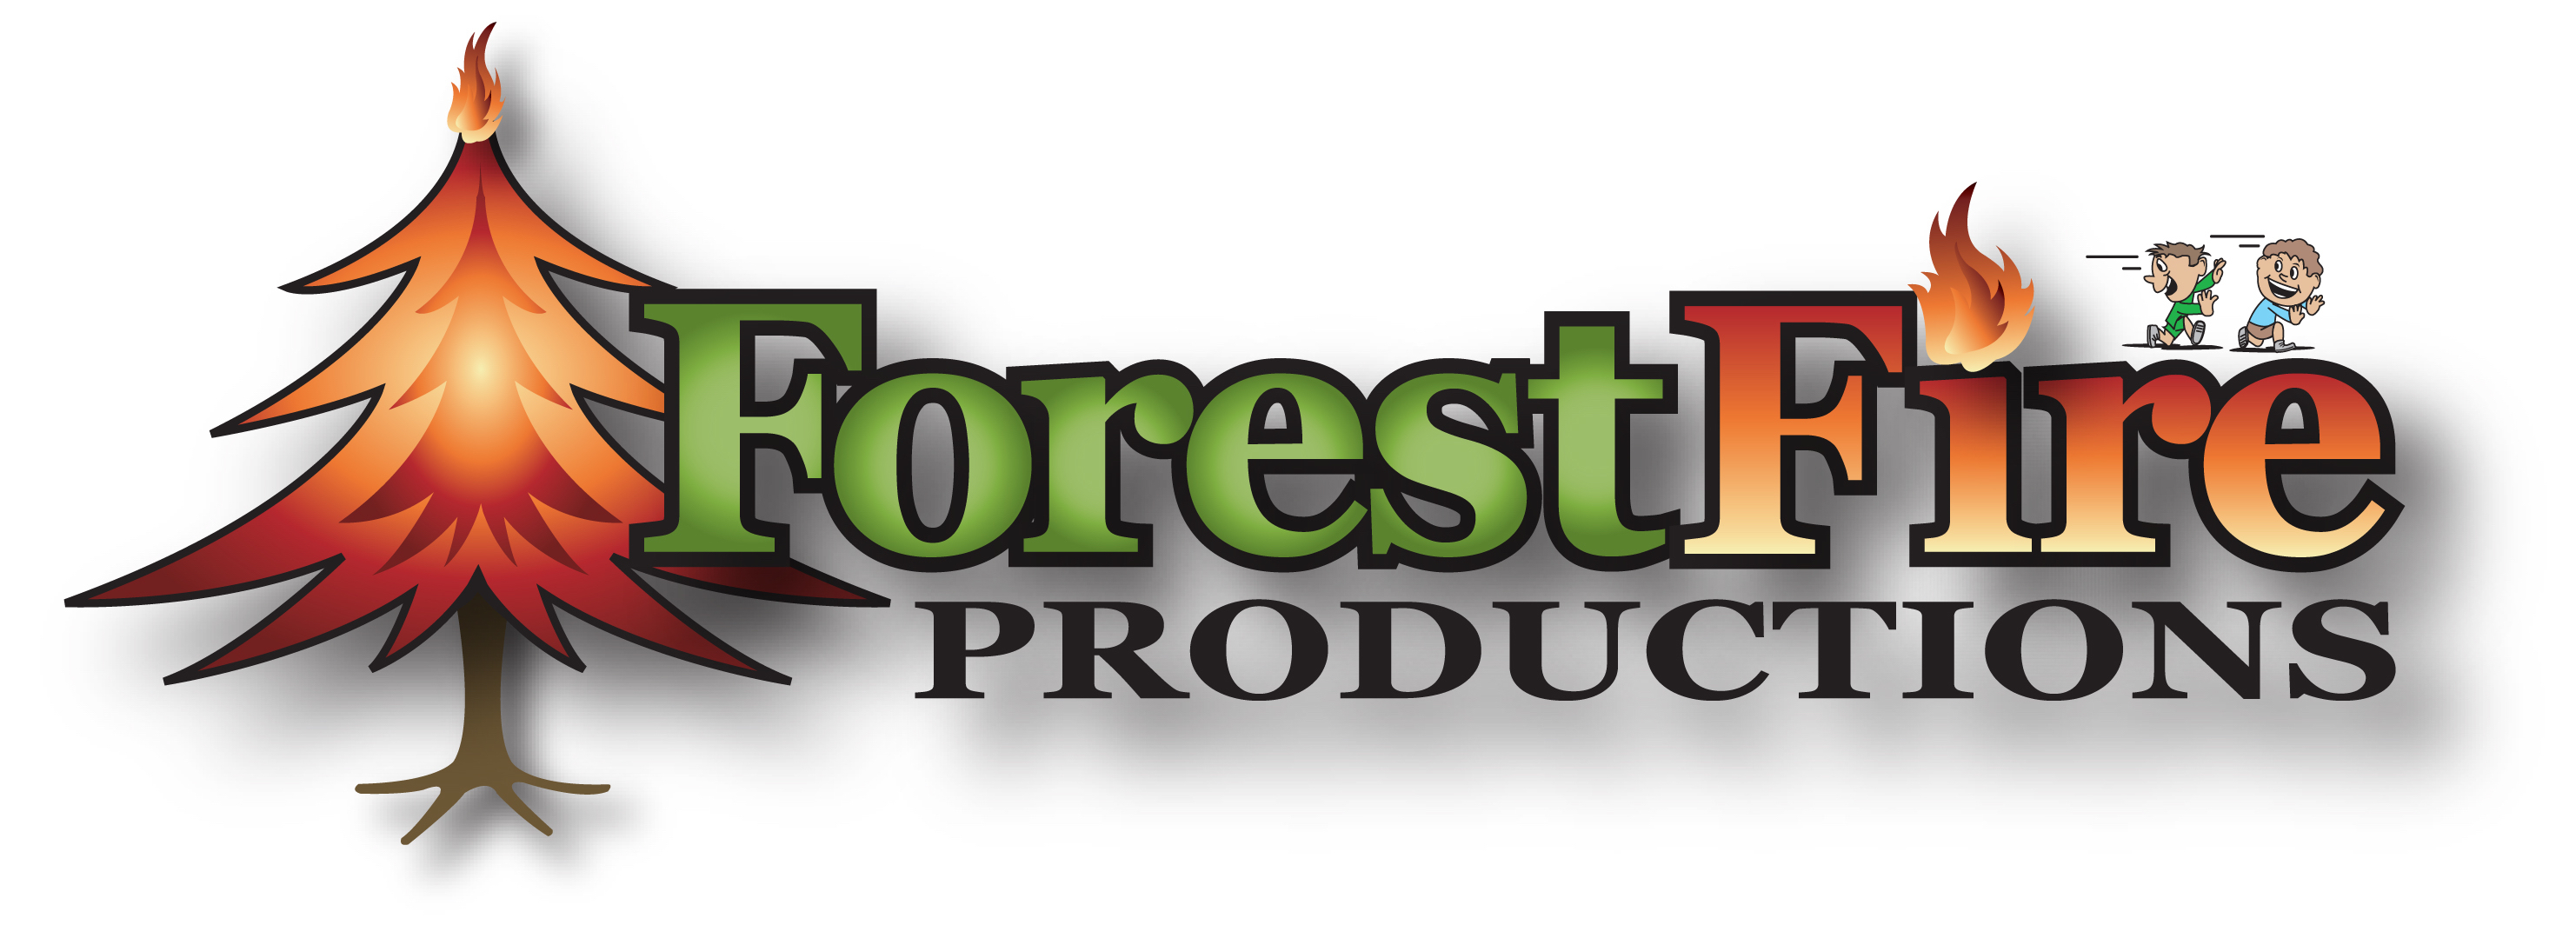 Forest Fire Productions